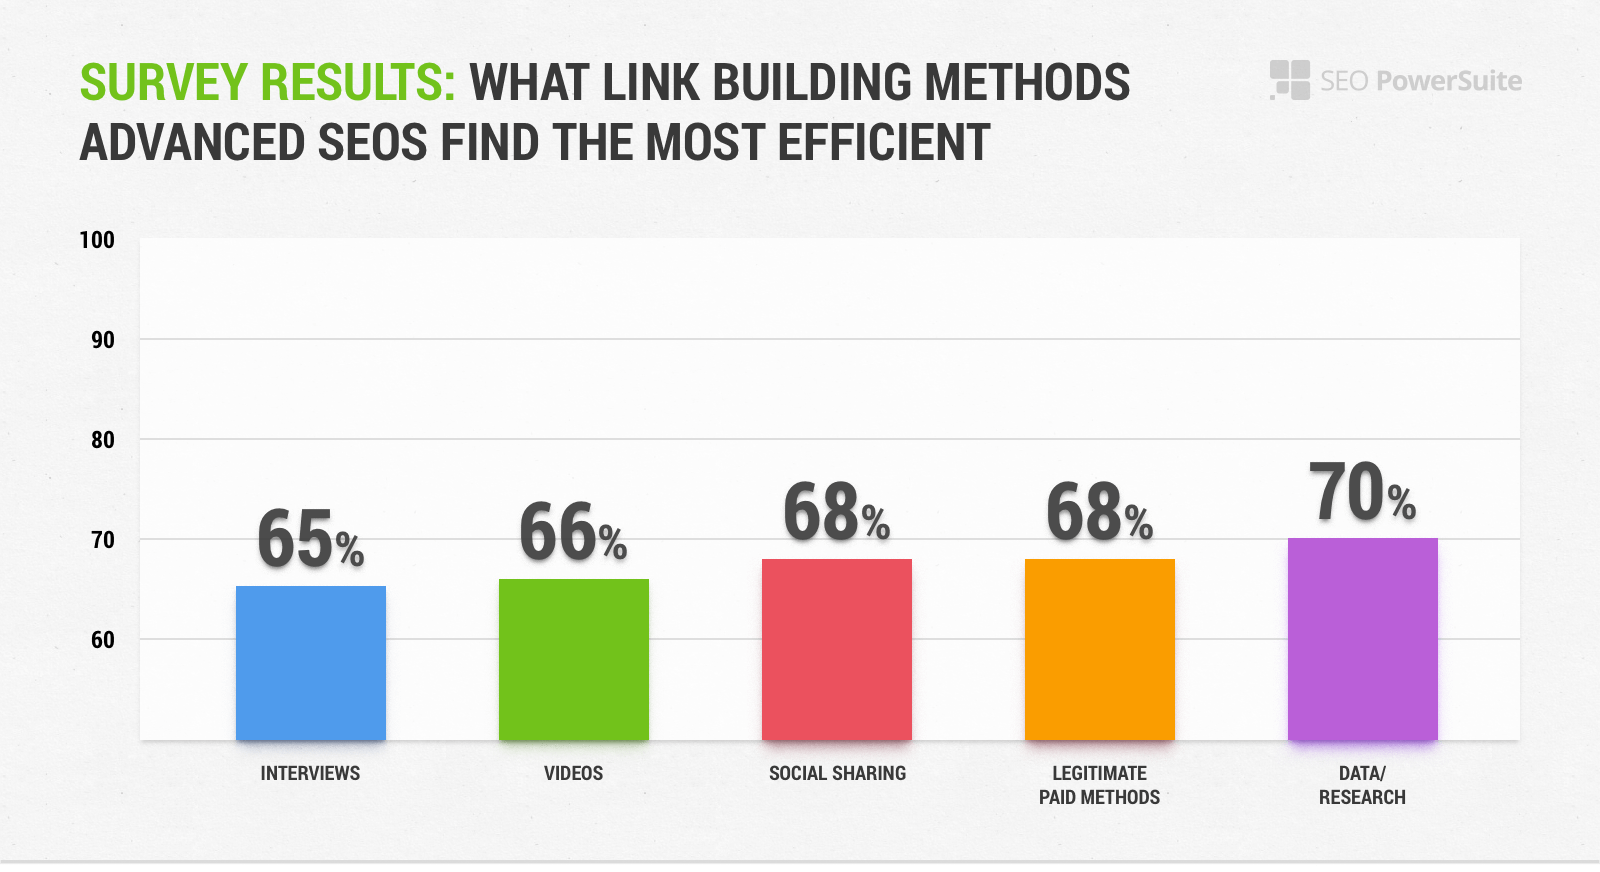 Survey Results: What Link Building Methods Advanced SEOs Find The Most Efficient